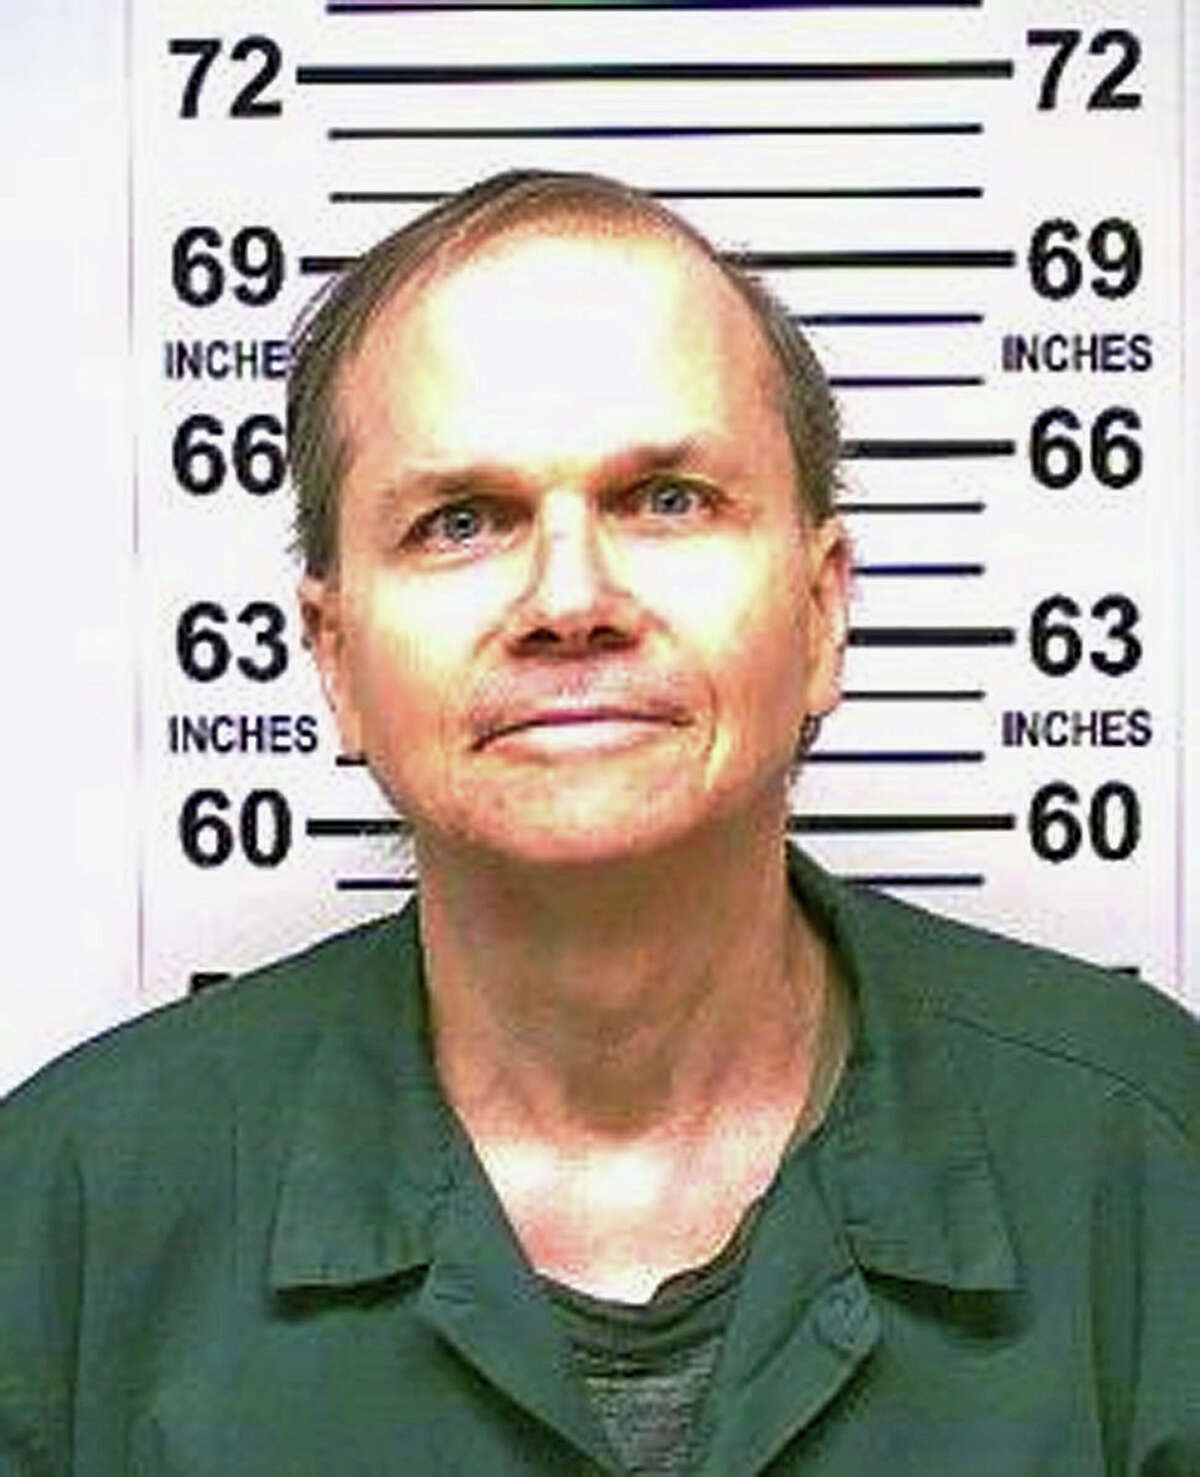 FILE - This Jan. 31, 2018 photo, provided by the New York State Department of Corrections, shows Mark David Chapman, the man who killed John Lennon outside his Manhattan apartment in 1980. Chapman said he was seeking glory and deserved the death penalty for the a€œdespicablea€ act. Chapman made the comments in response to questions last month from a parole board, which denied him parole for an 11th time. (New York State Department of Corrections via AP, File)